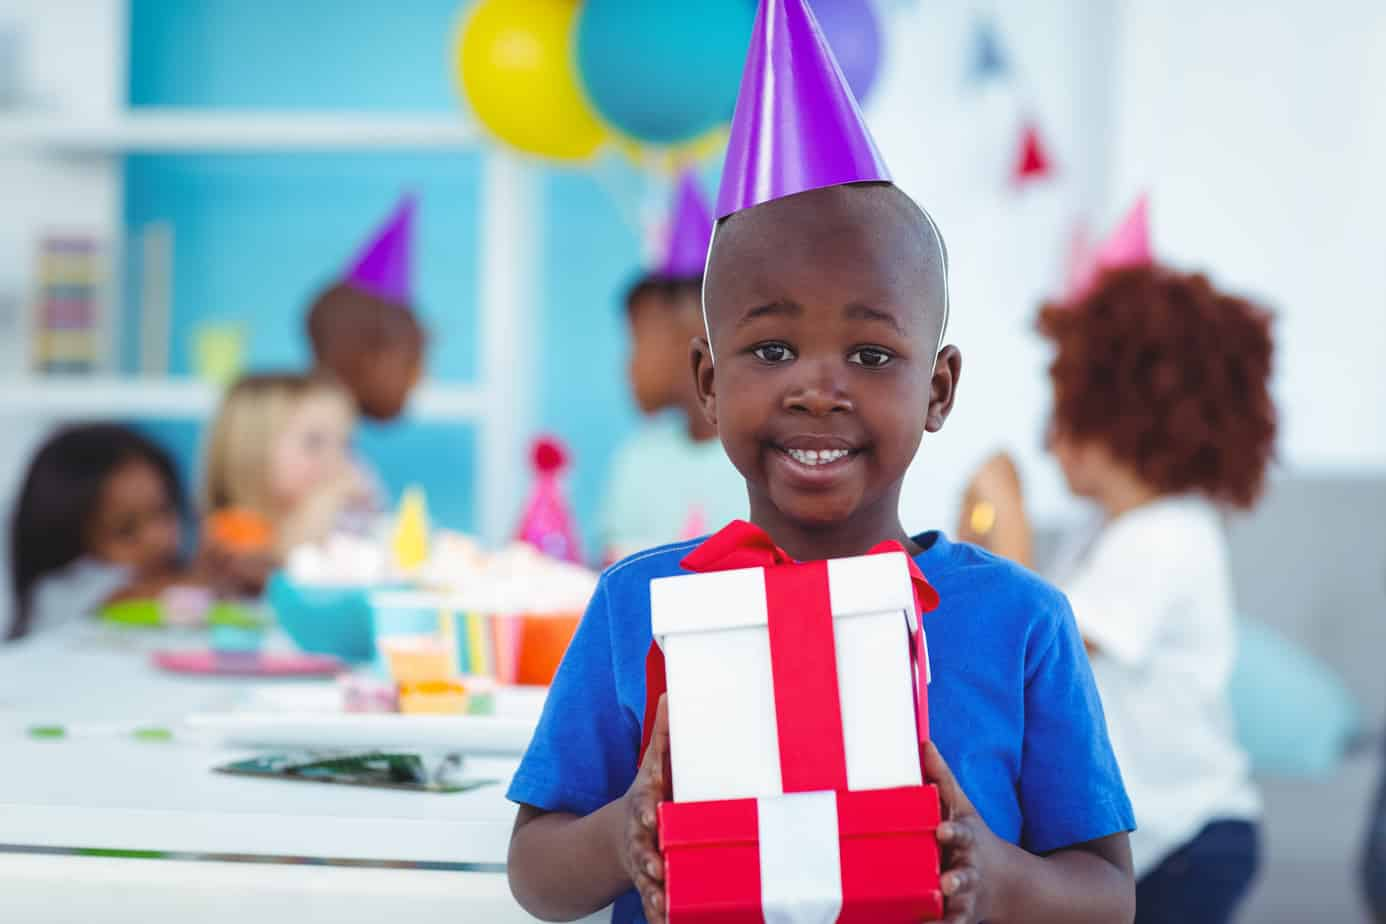 Exciting Kids Birthday Party Venue Near Fayetteville, GA